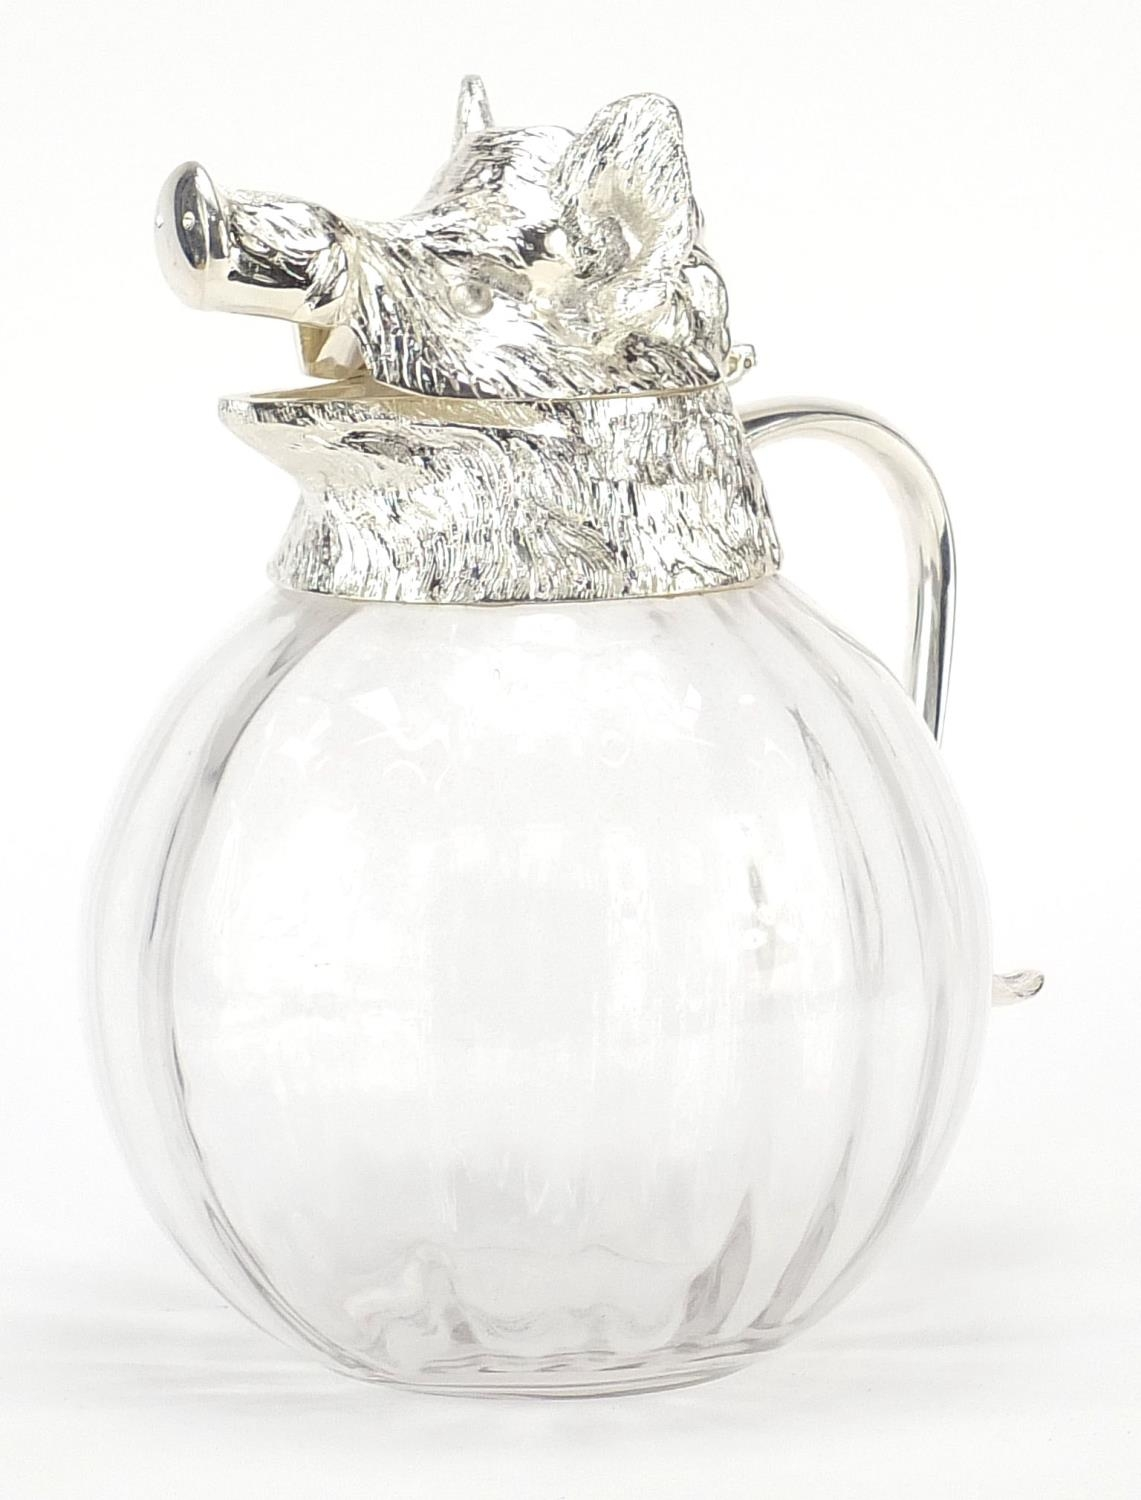 Manner of Valenti, globular glass carafe with silver plated mounts in the form of a boars head, 28cm - Image 2 of 10